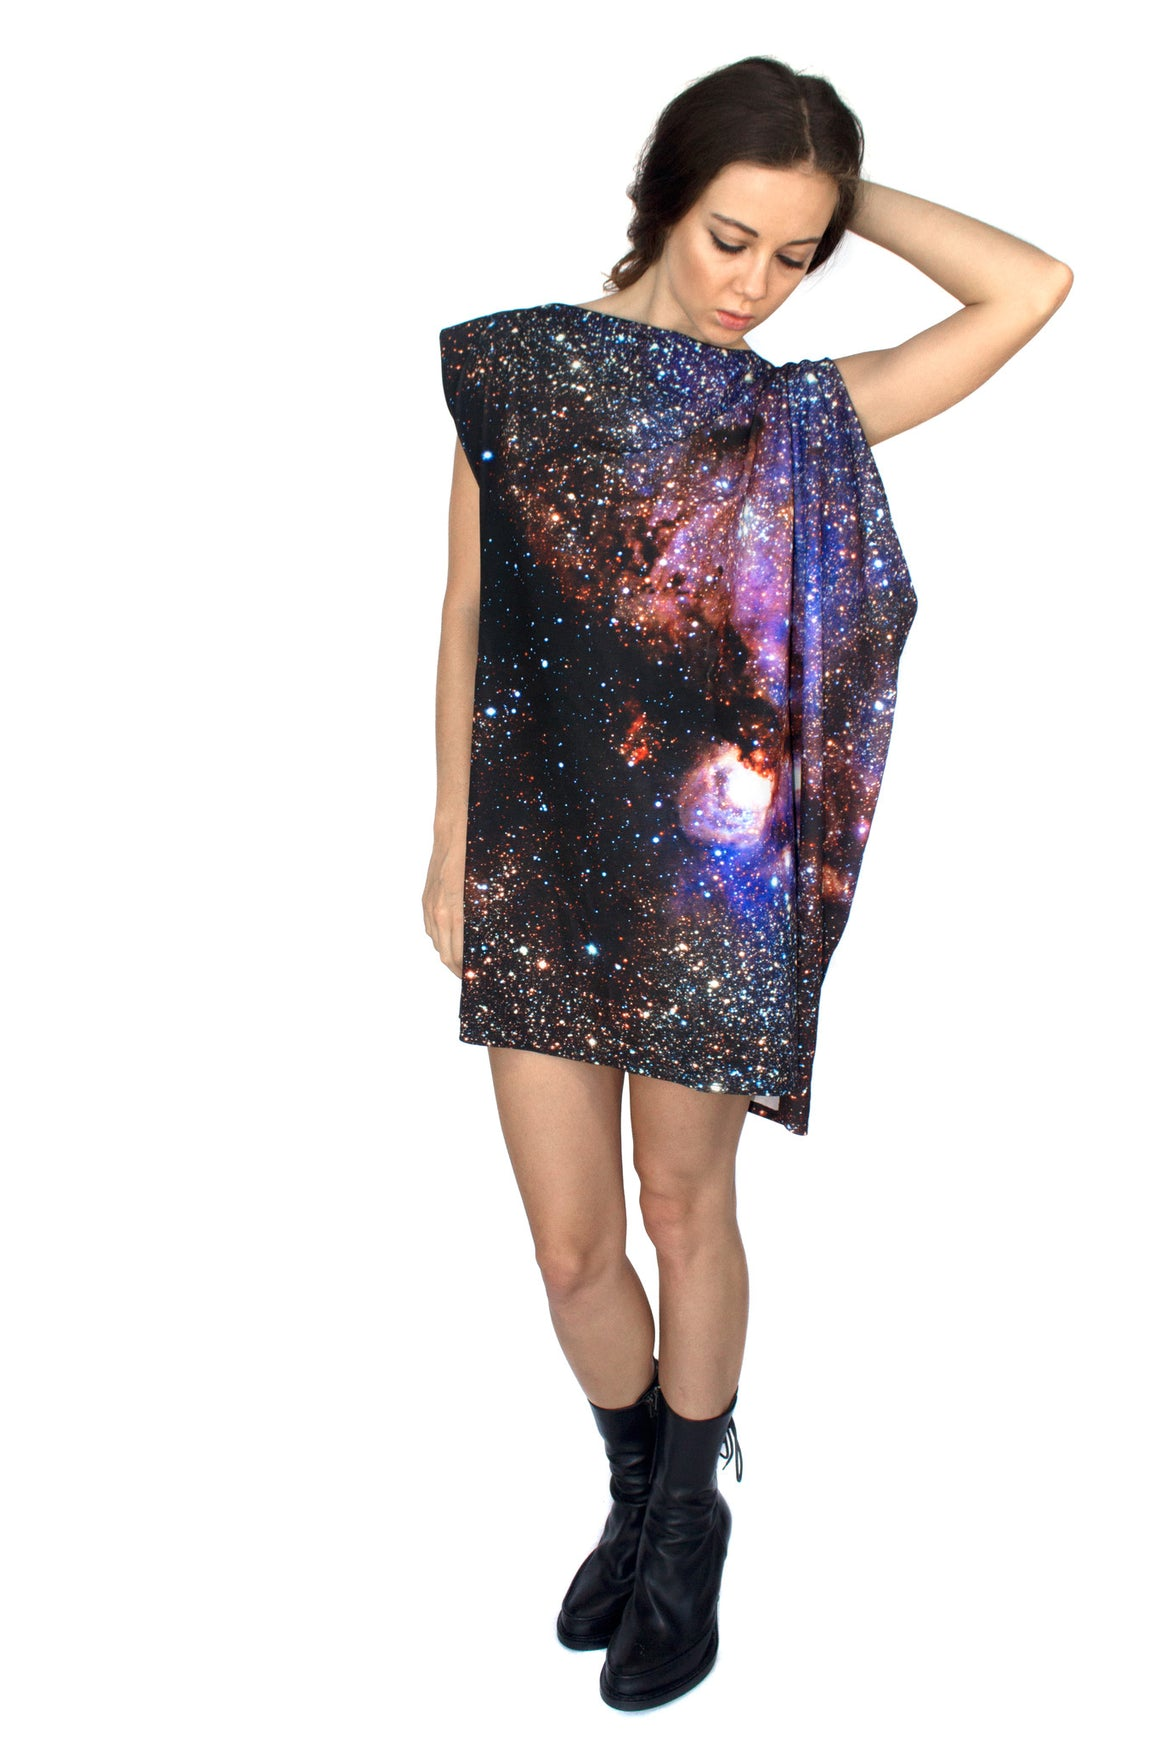 Milky Way Galaxy Jersey Dress